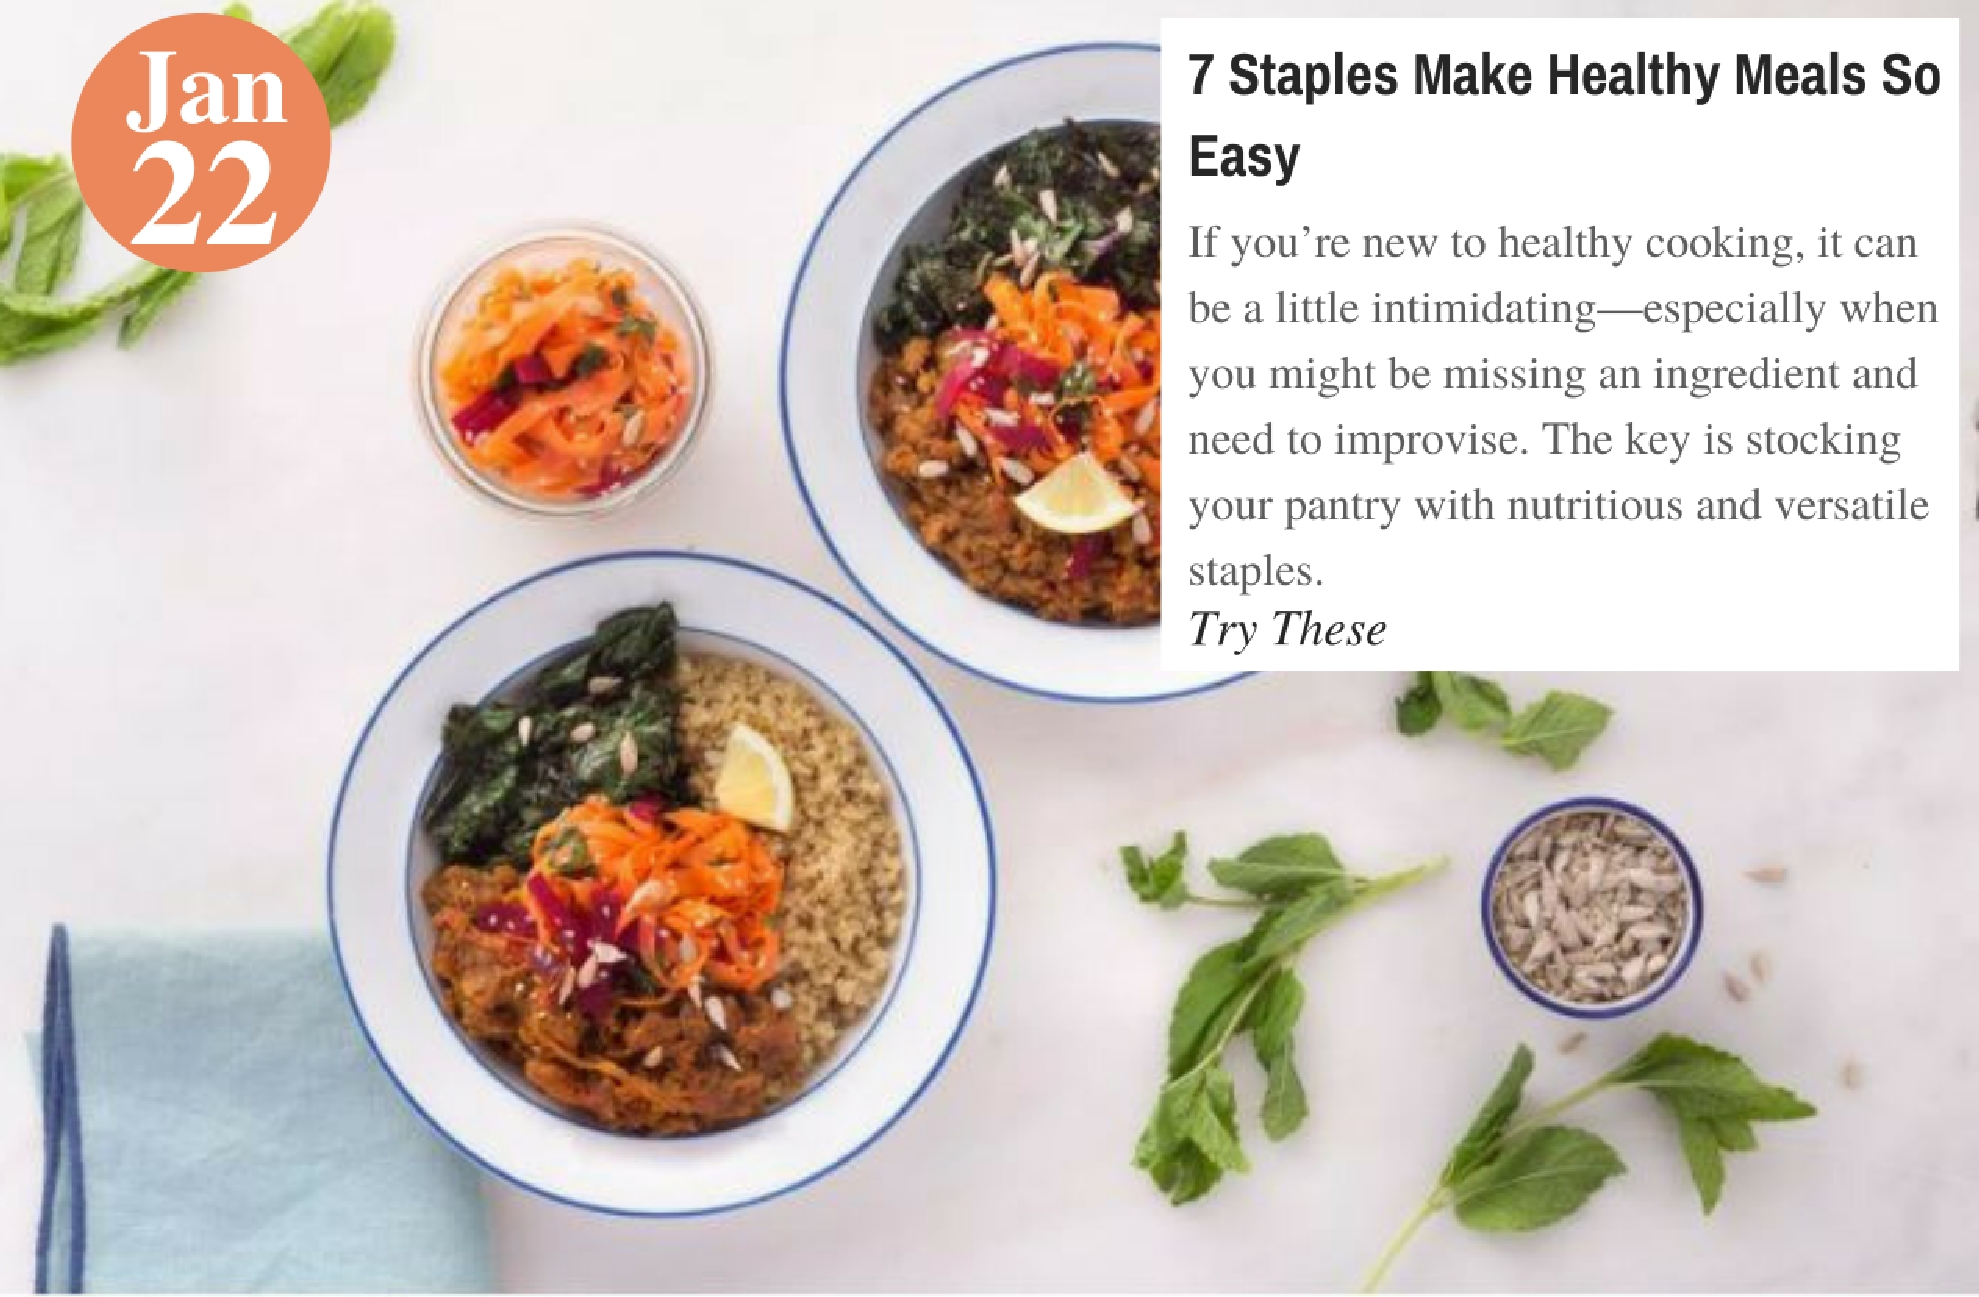 7 Staples Make Healthy Meals So Easy